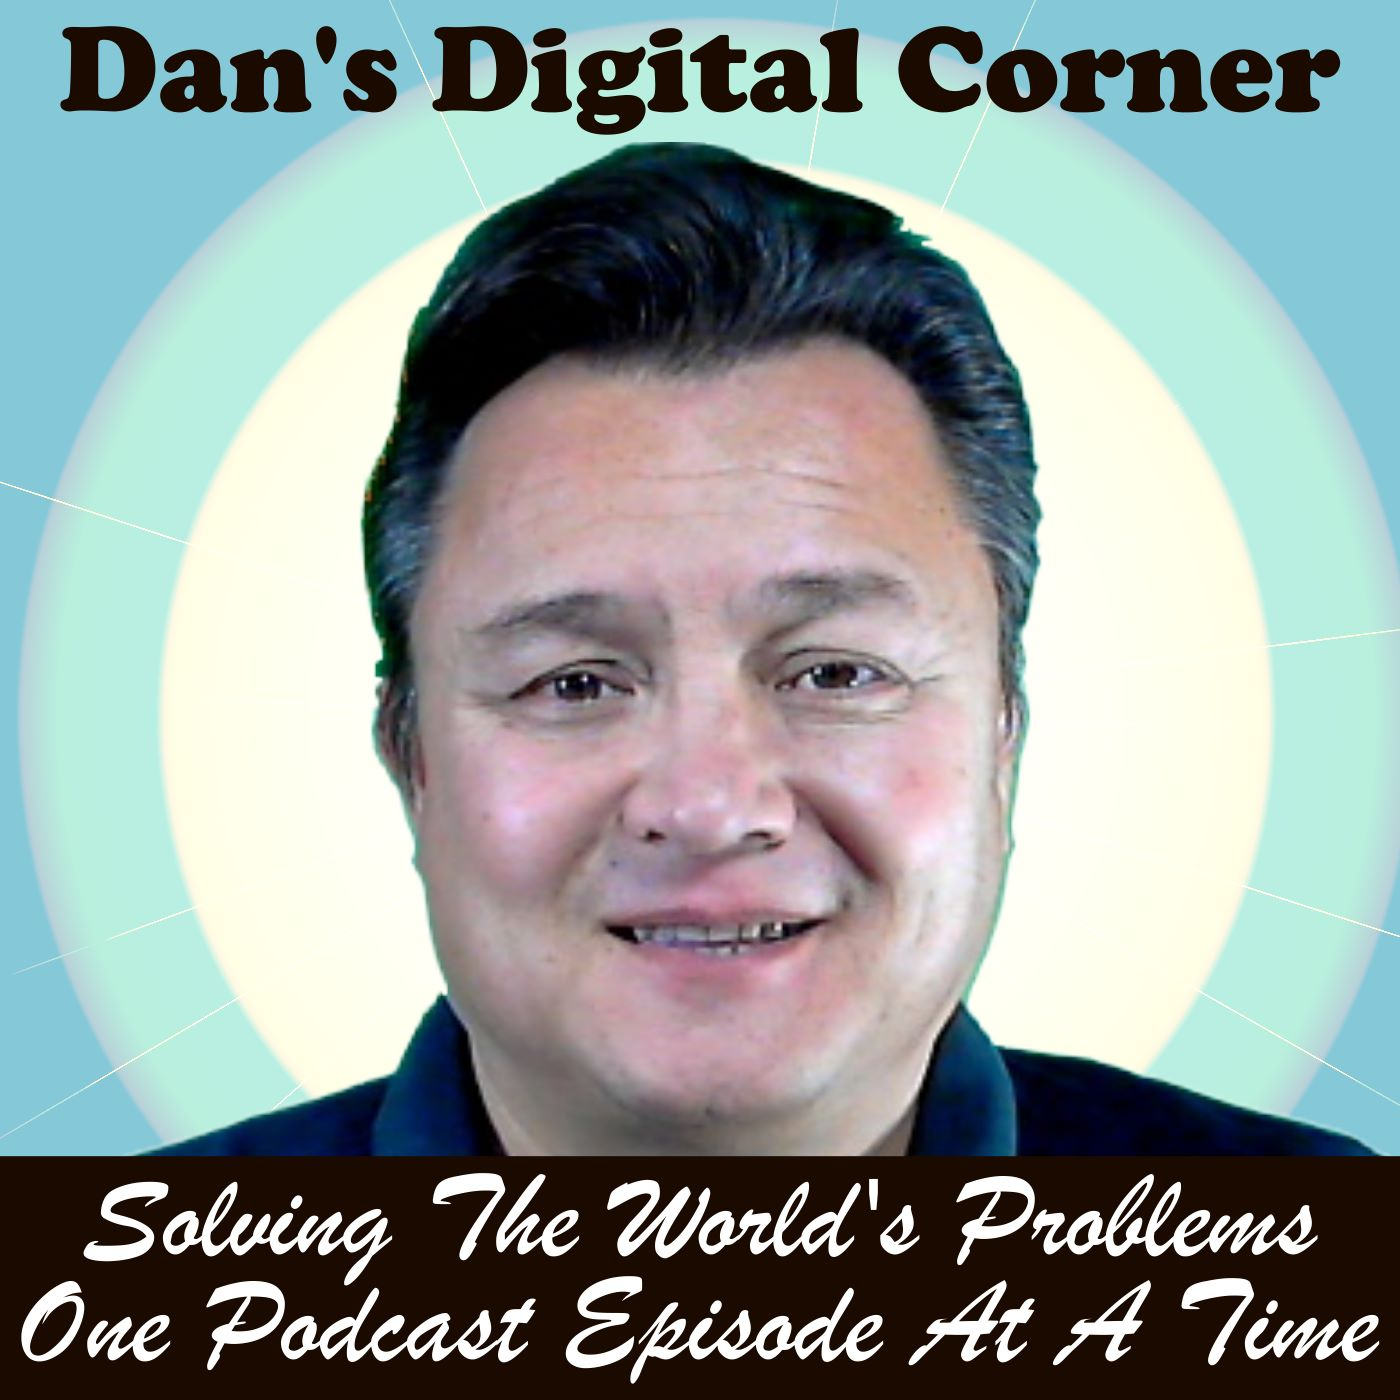 Dan's Digital Corner